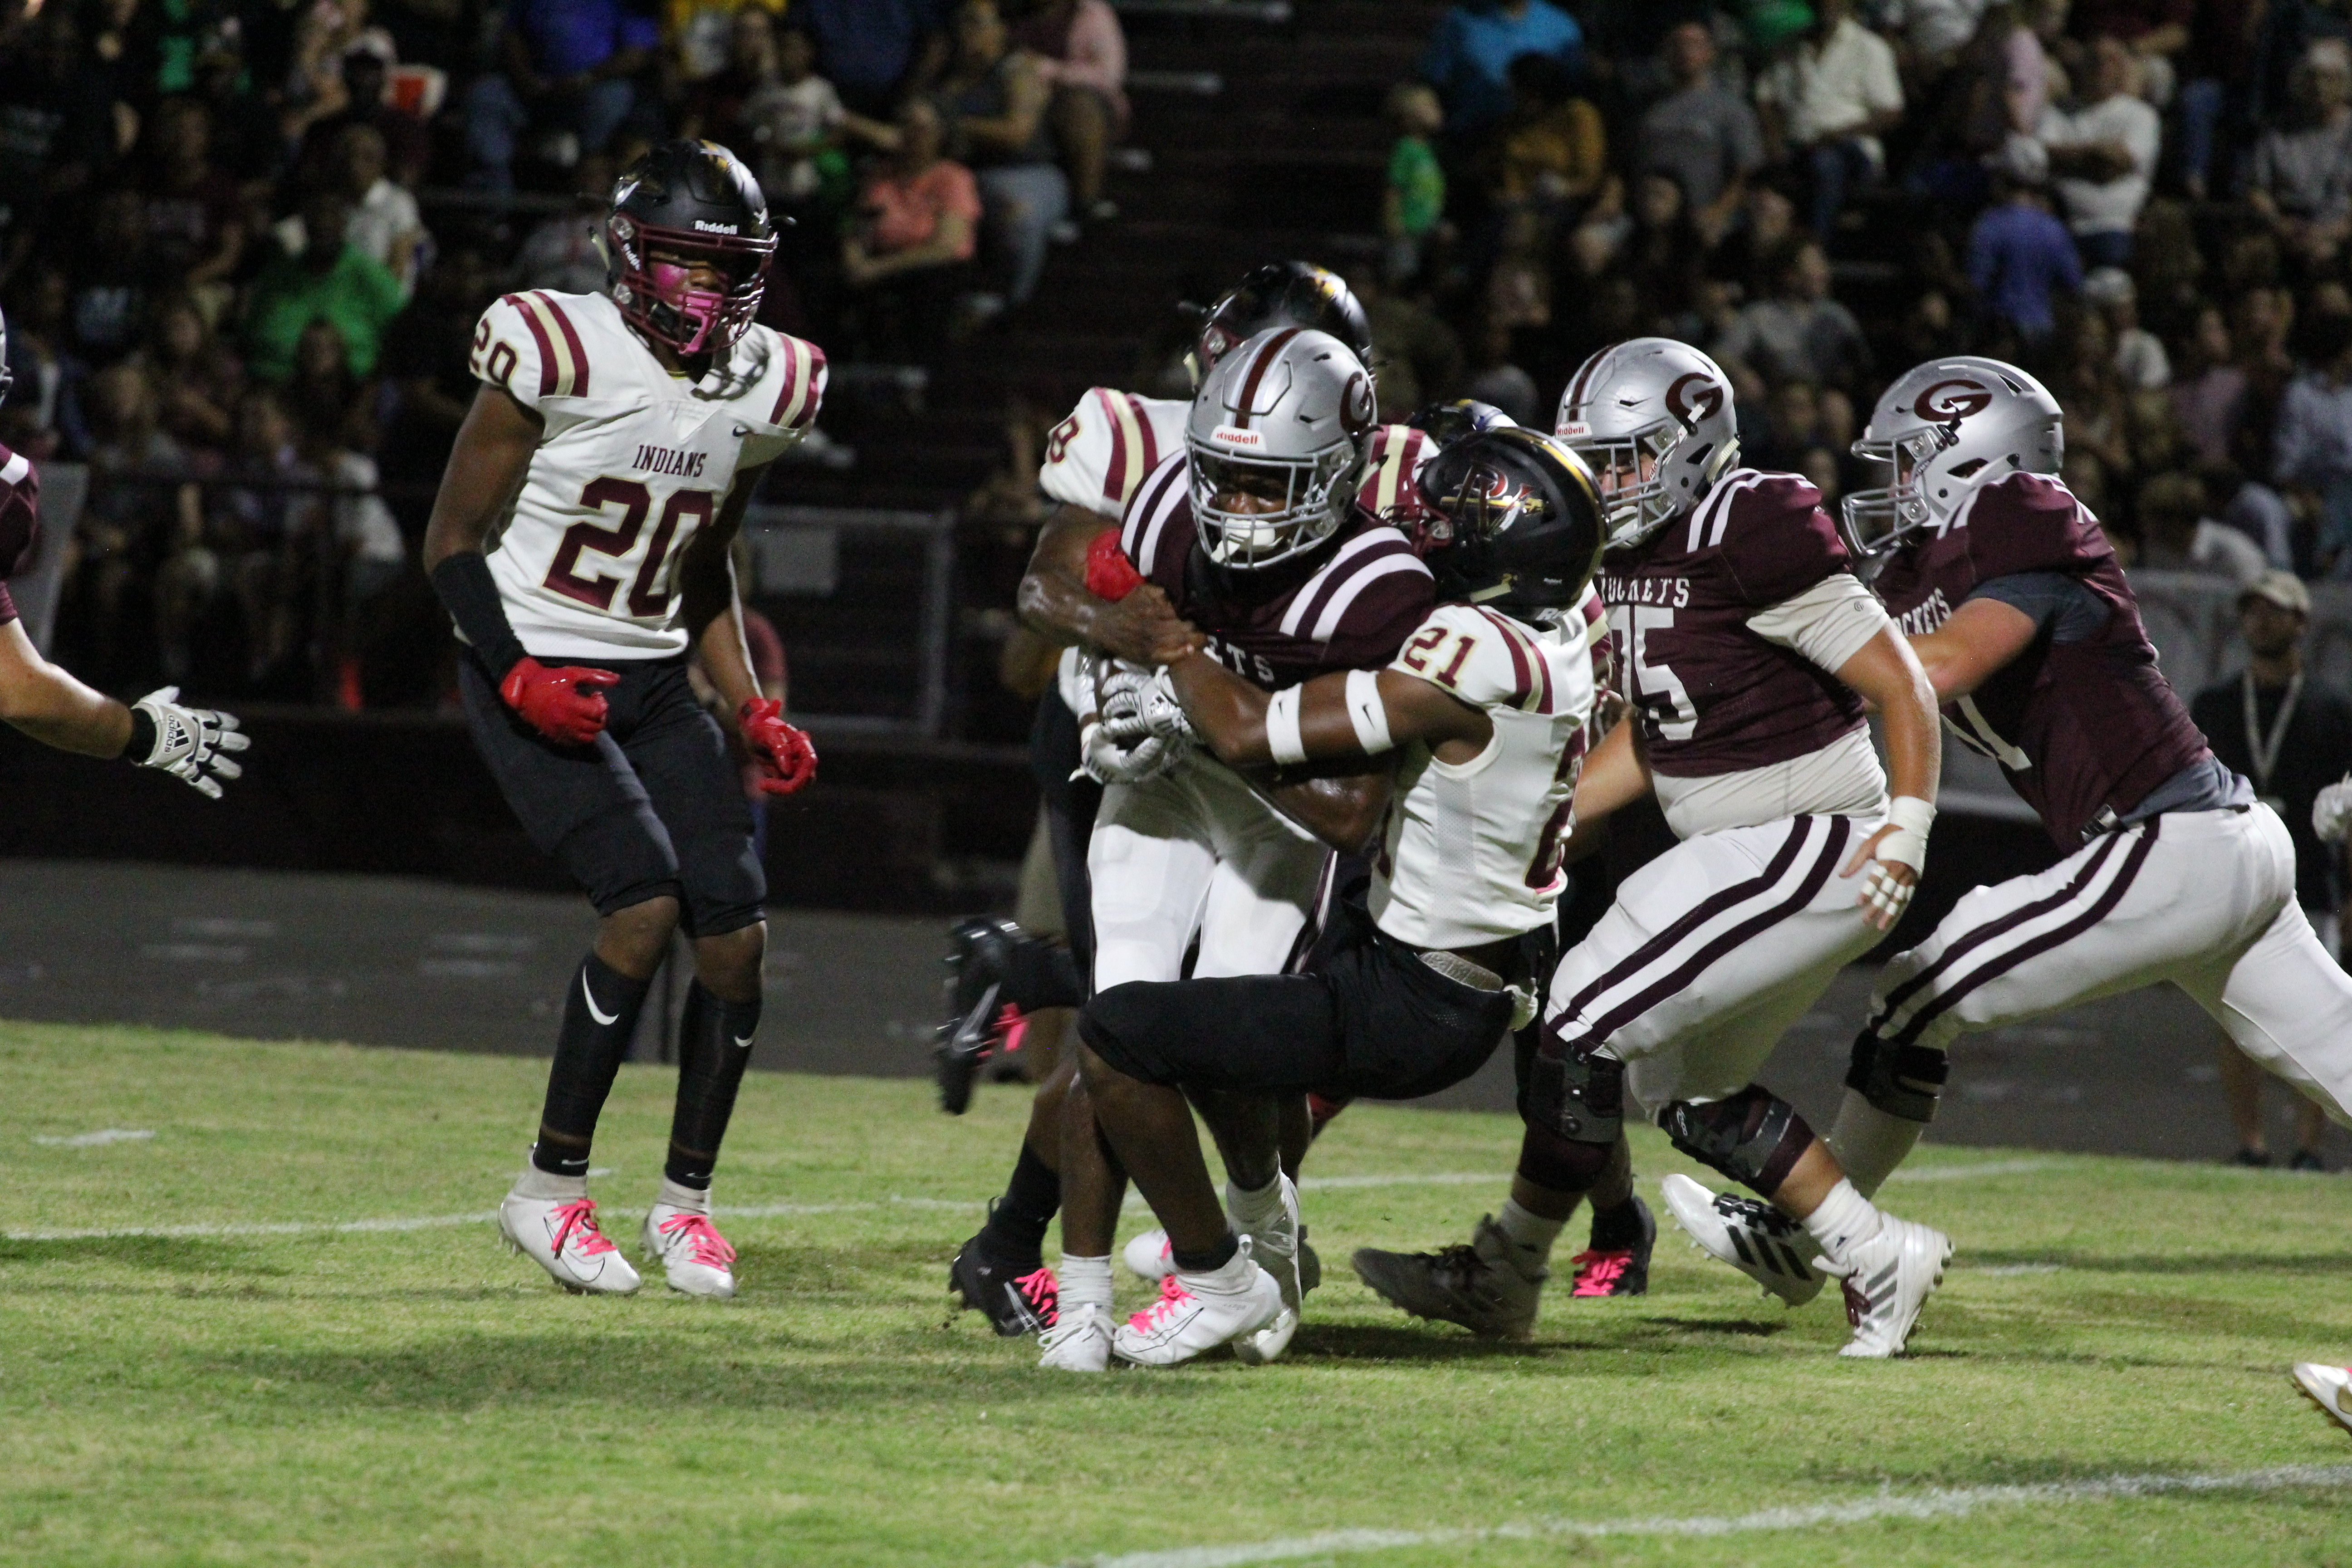 Pinson Valley returns to form in victory over Gardendale, now turns to Huffman